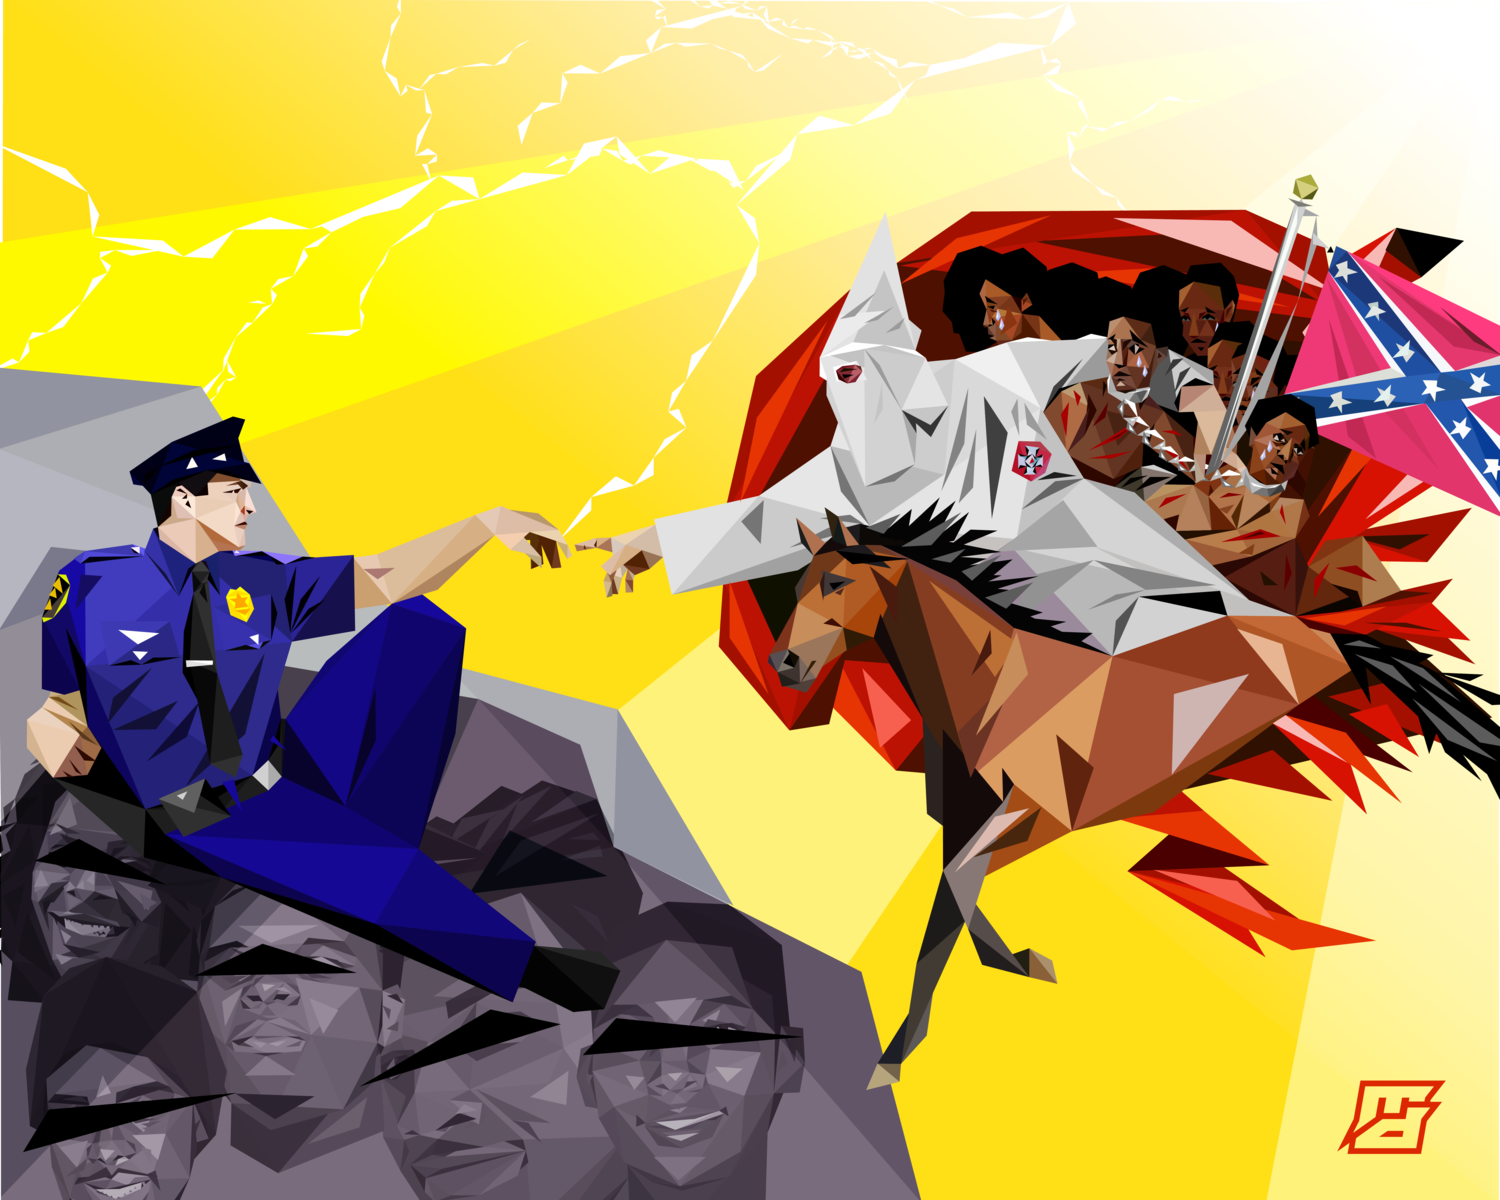 Racist+Cops+%2820x16%29-01.png?format=1500w&content-type=image%2Fpng